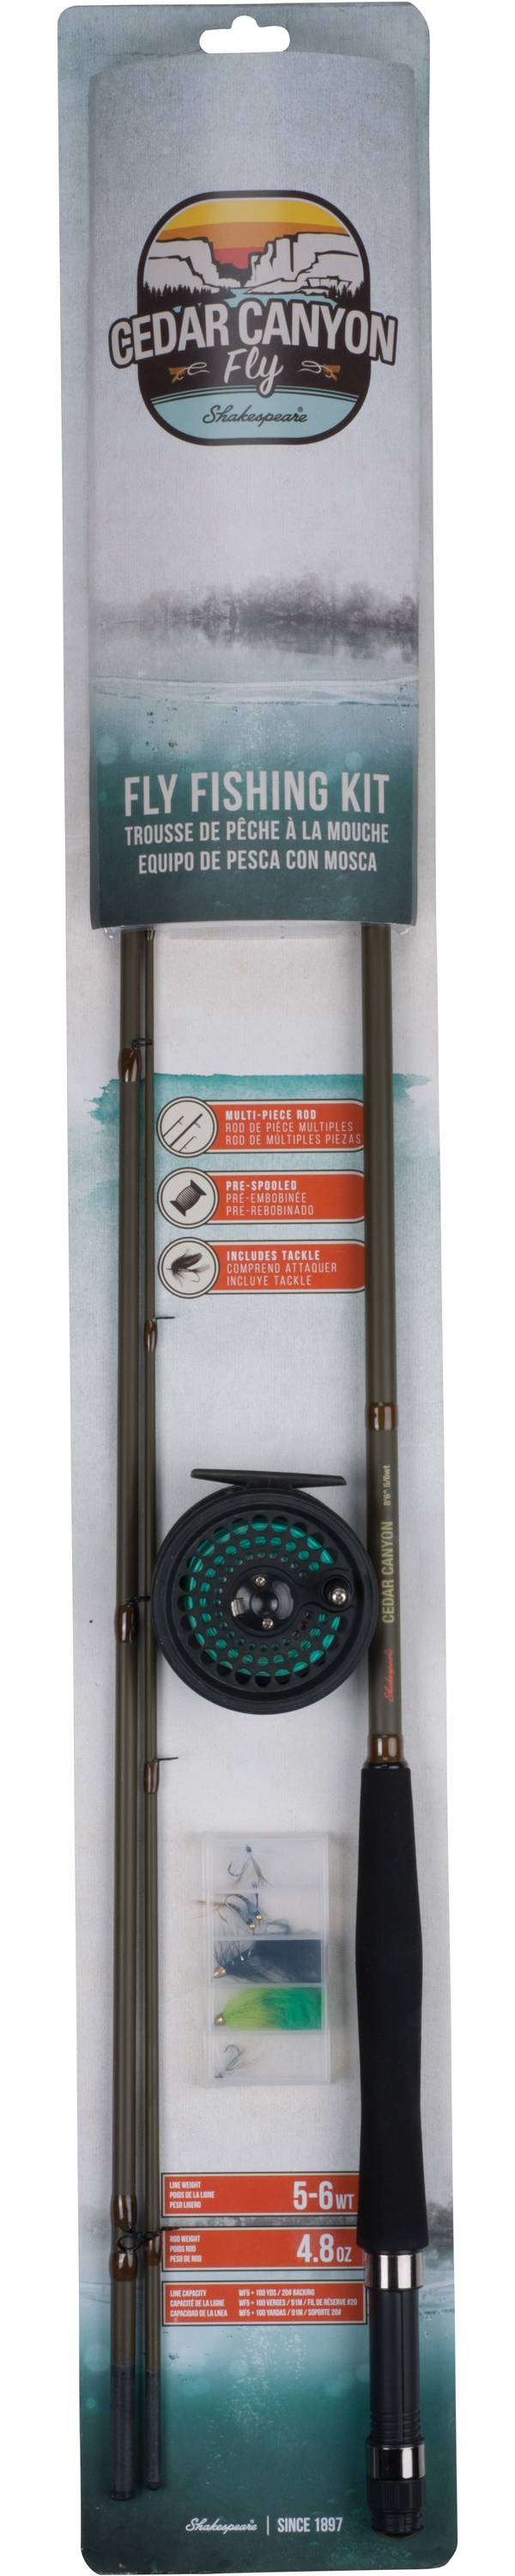 Shakespeare Cedar Canyon Fly Fishing Kit product image